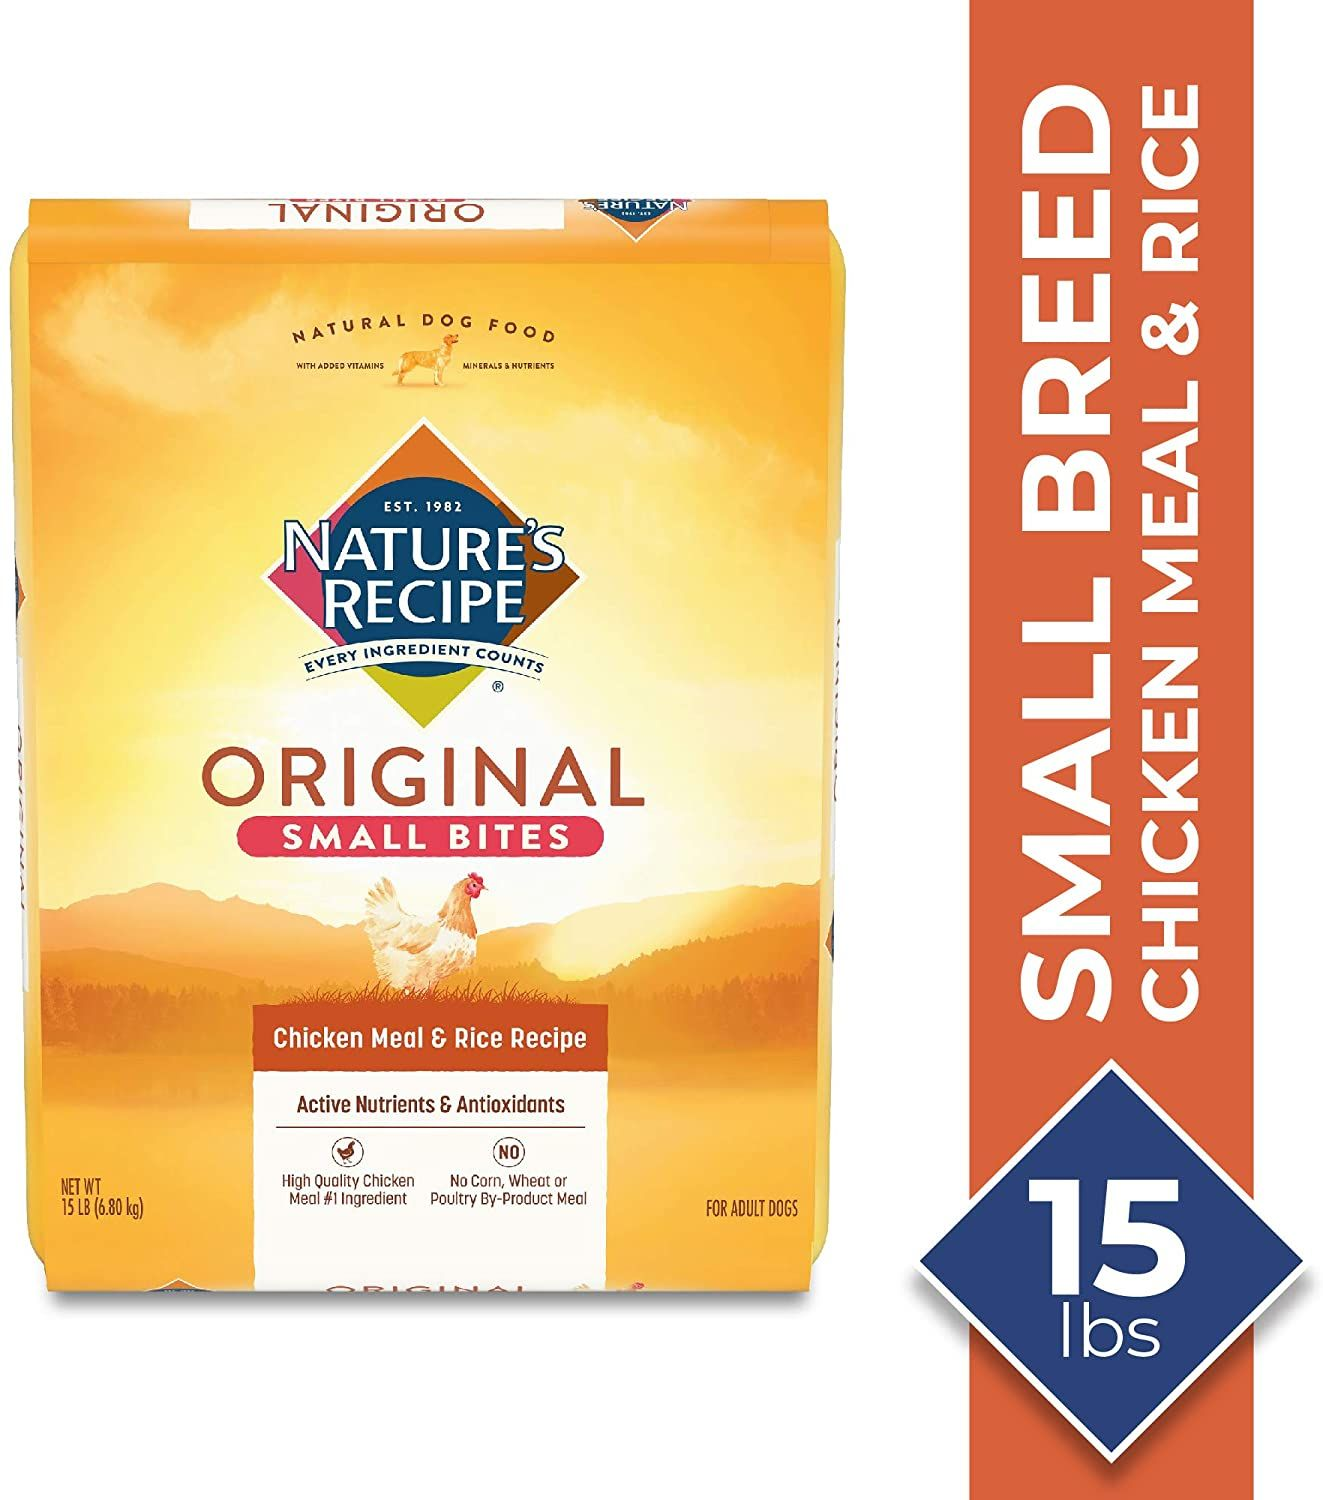 Natures Recipe Small Bites Dry Dog Foodchicken Meal Amprice Recipe Pounds Pet Supplies Amazon Affiliate Link Click Dry Dog Food Small Bites Best Dry Dog Food